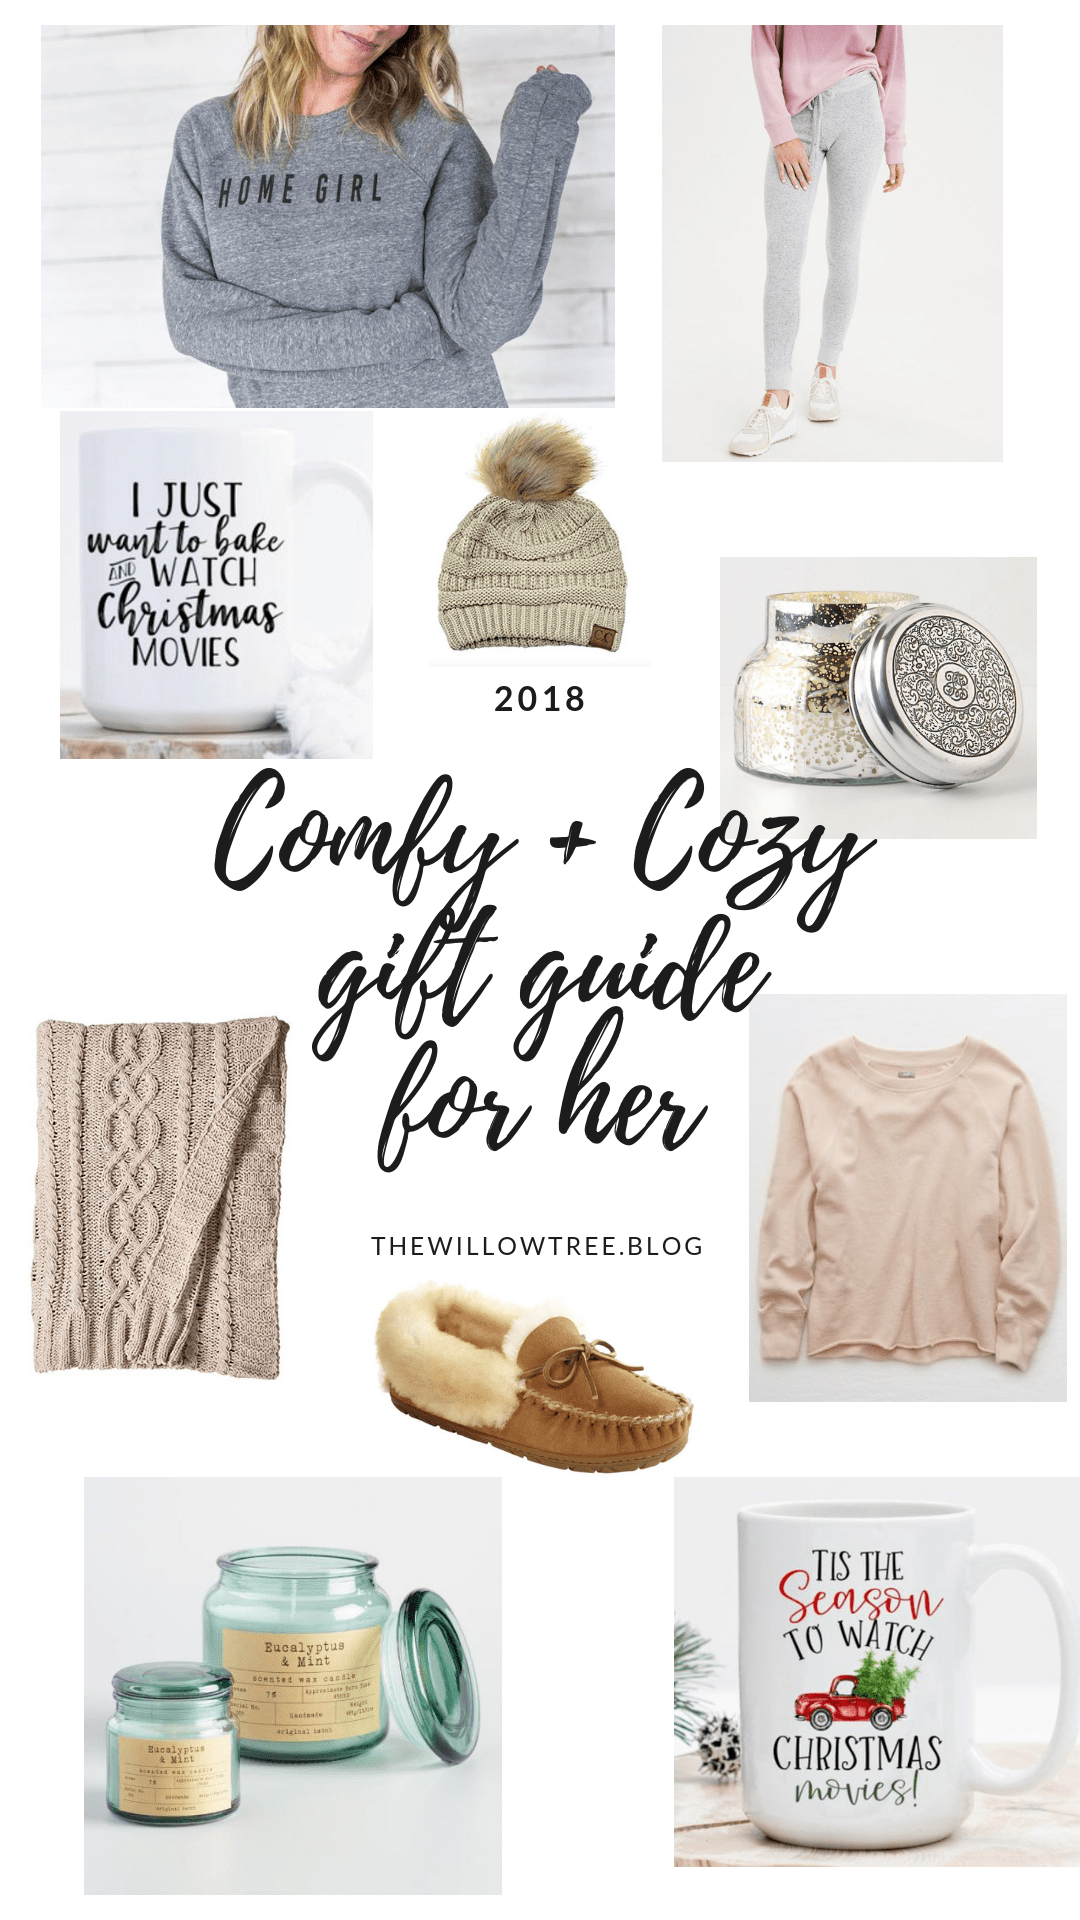 Christmas Gifts 2018 For Her.The Comfy Cozy Gift Guide For Her 2018 The Willow Tree